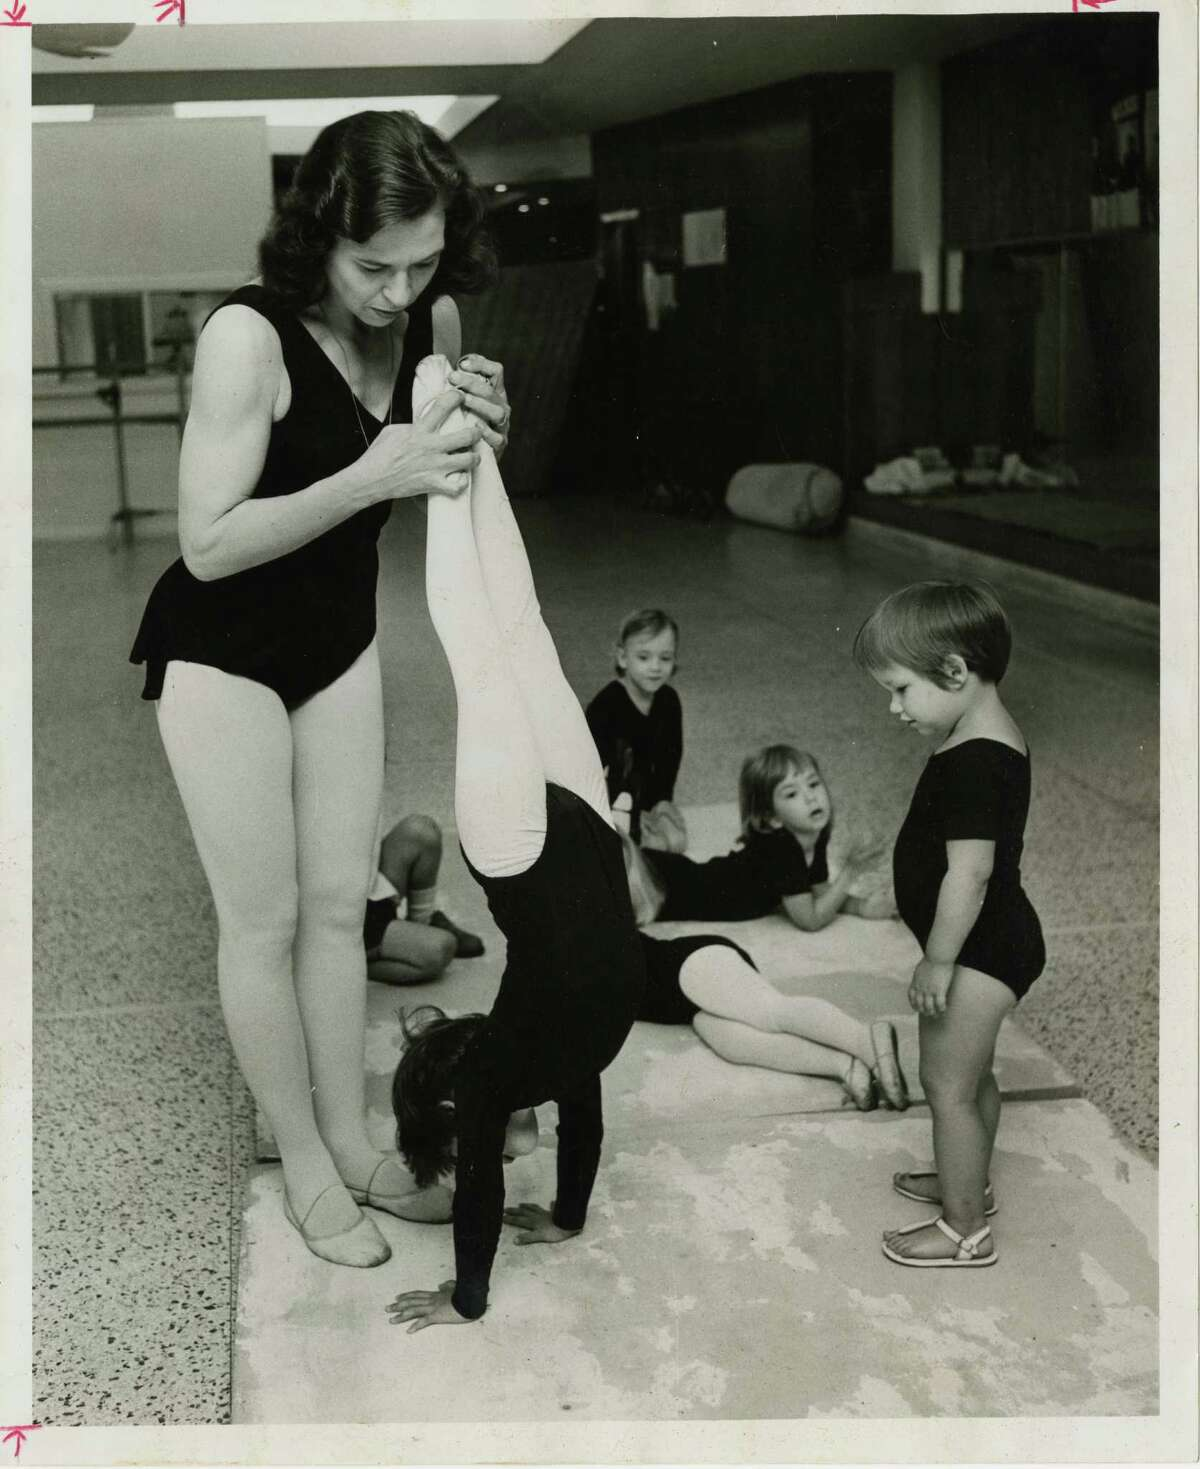 Patsy Swayze teaches a class of young students in 1966.